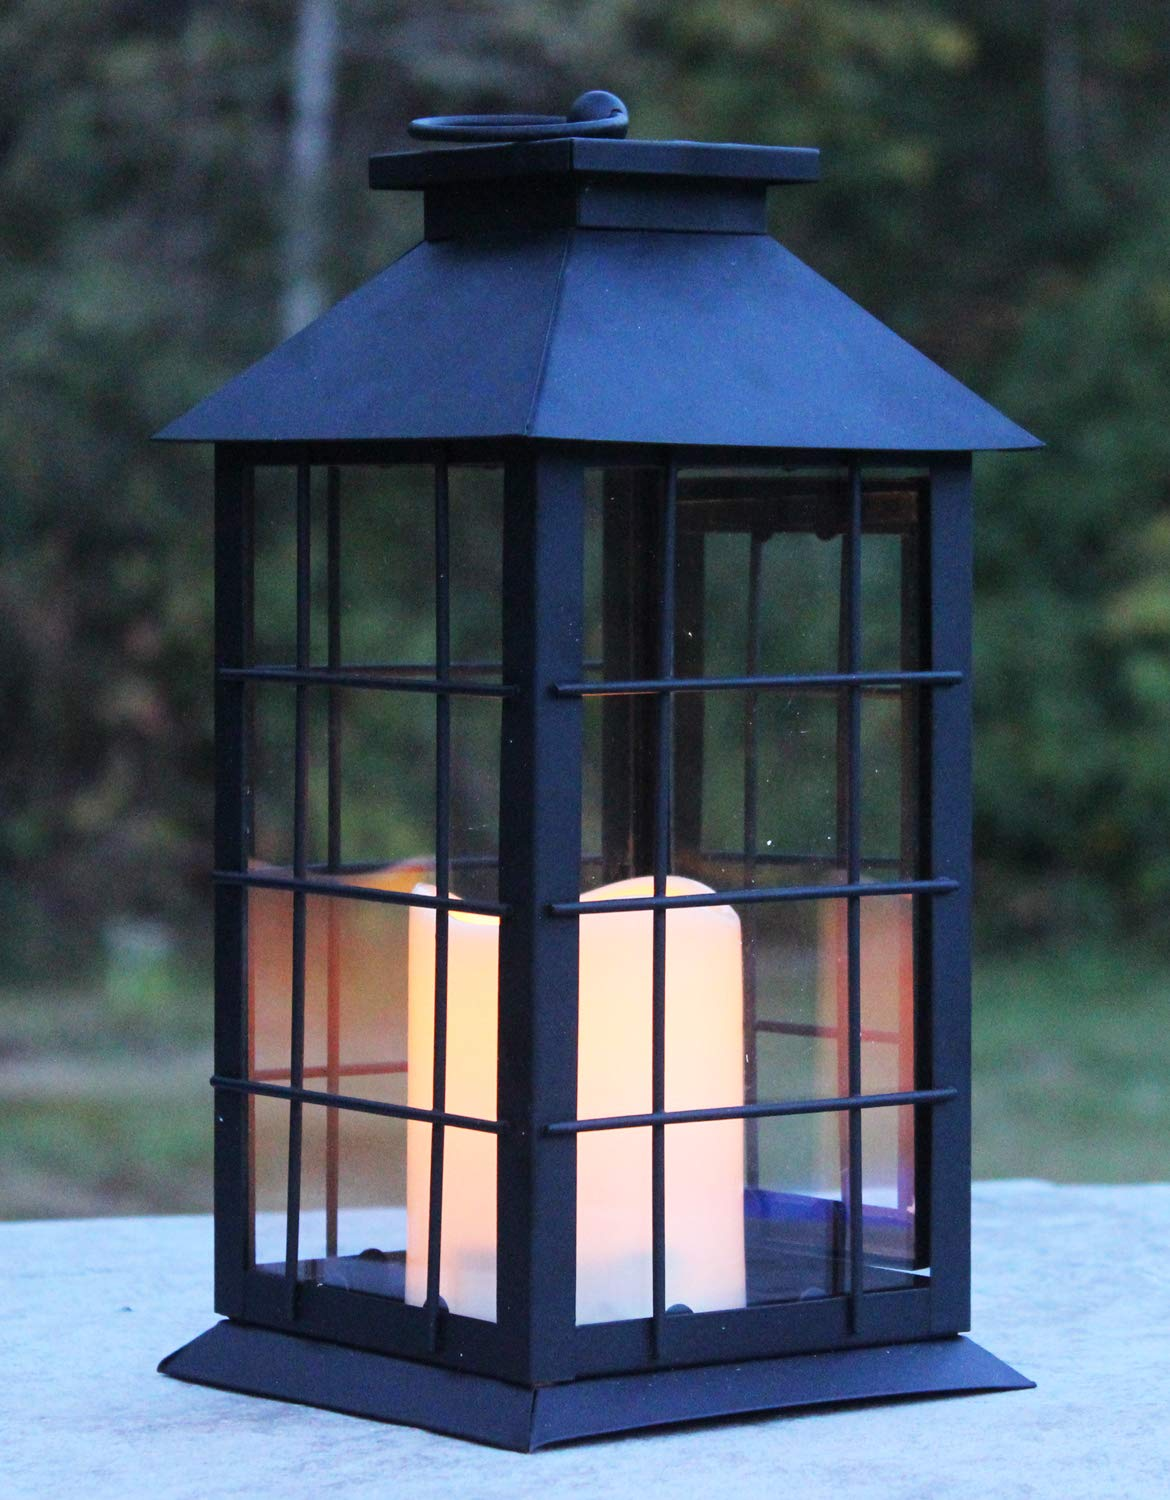 Seraphic Black Metal Lantern with Flickering Flameless LED Candle, Case of 6 by Seraphic (Image #4)